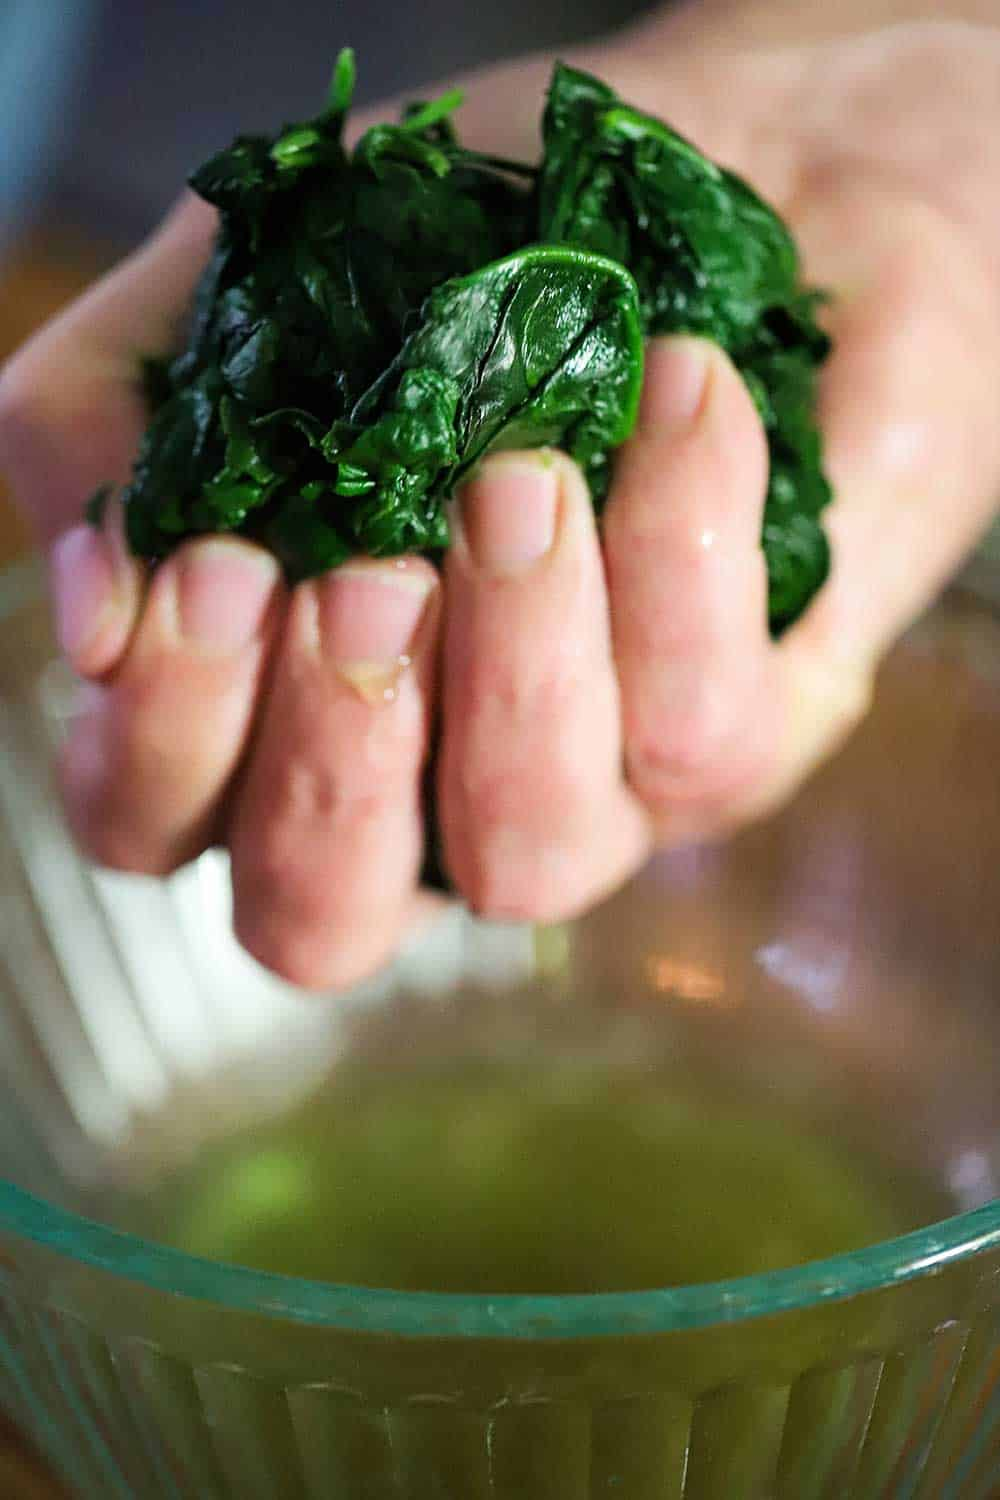 A hand squeezing excess water from a handful of blanched spinach leaves.